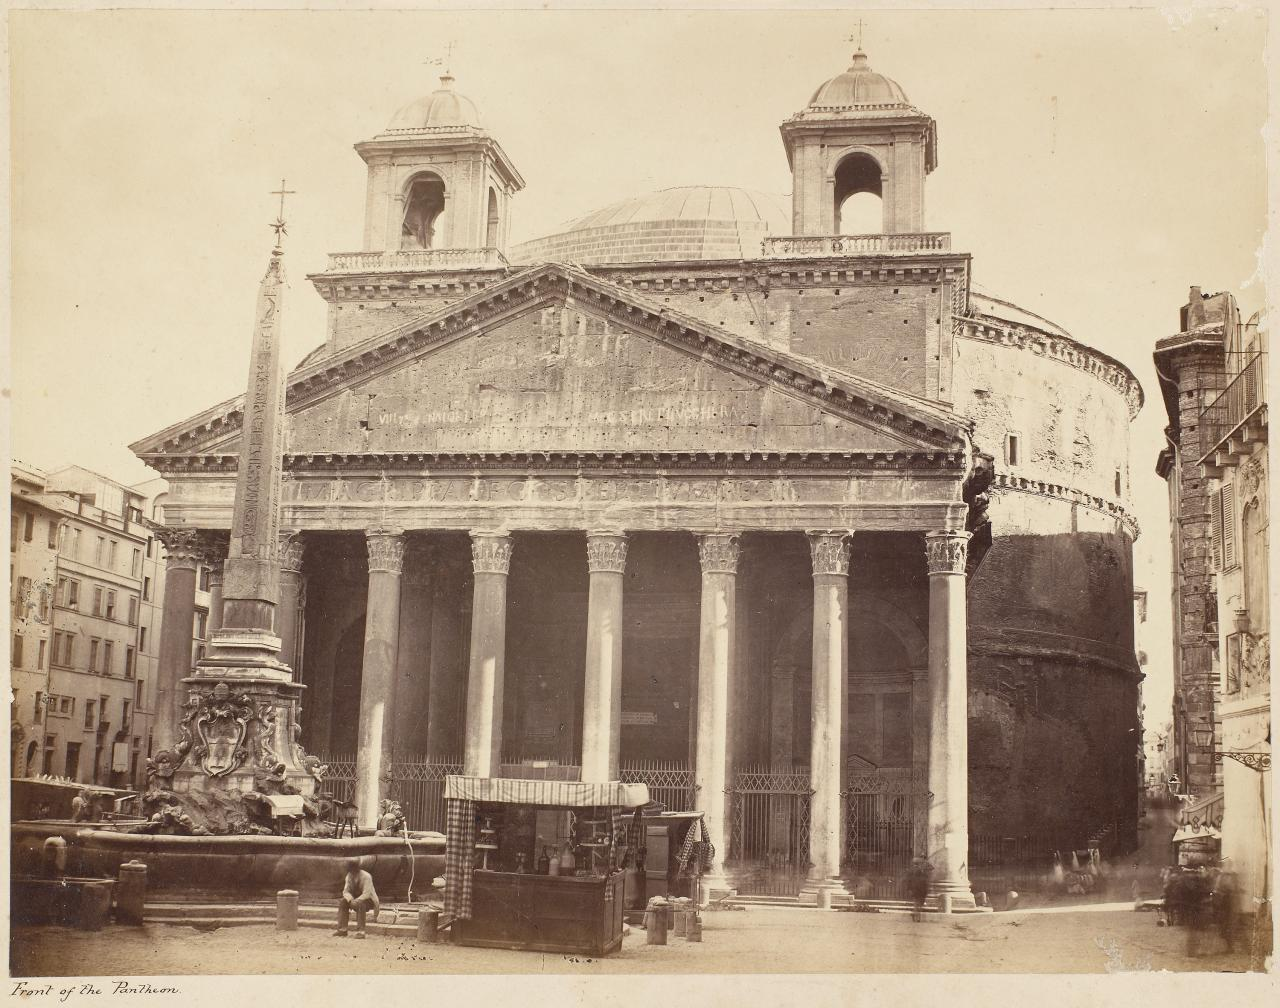 Front of the Pantheon